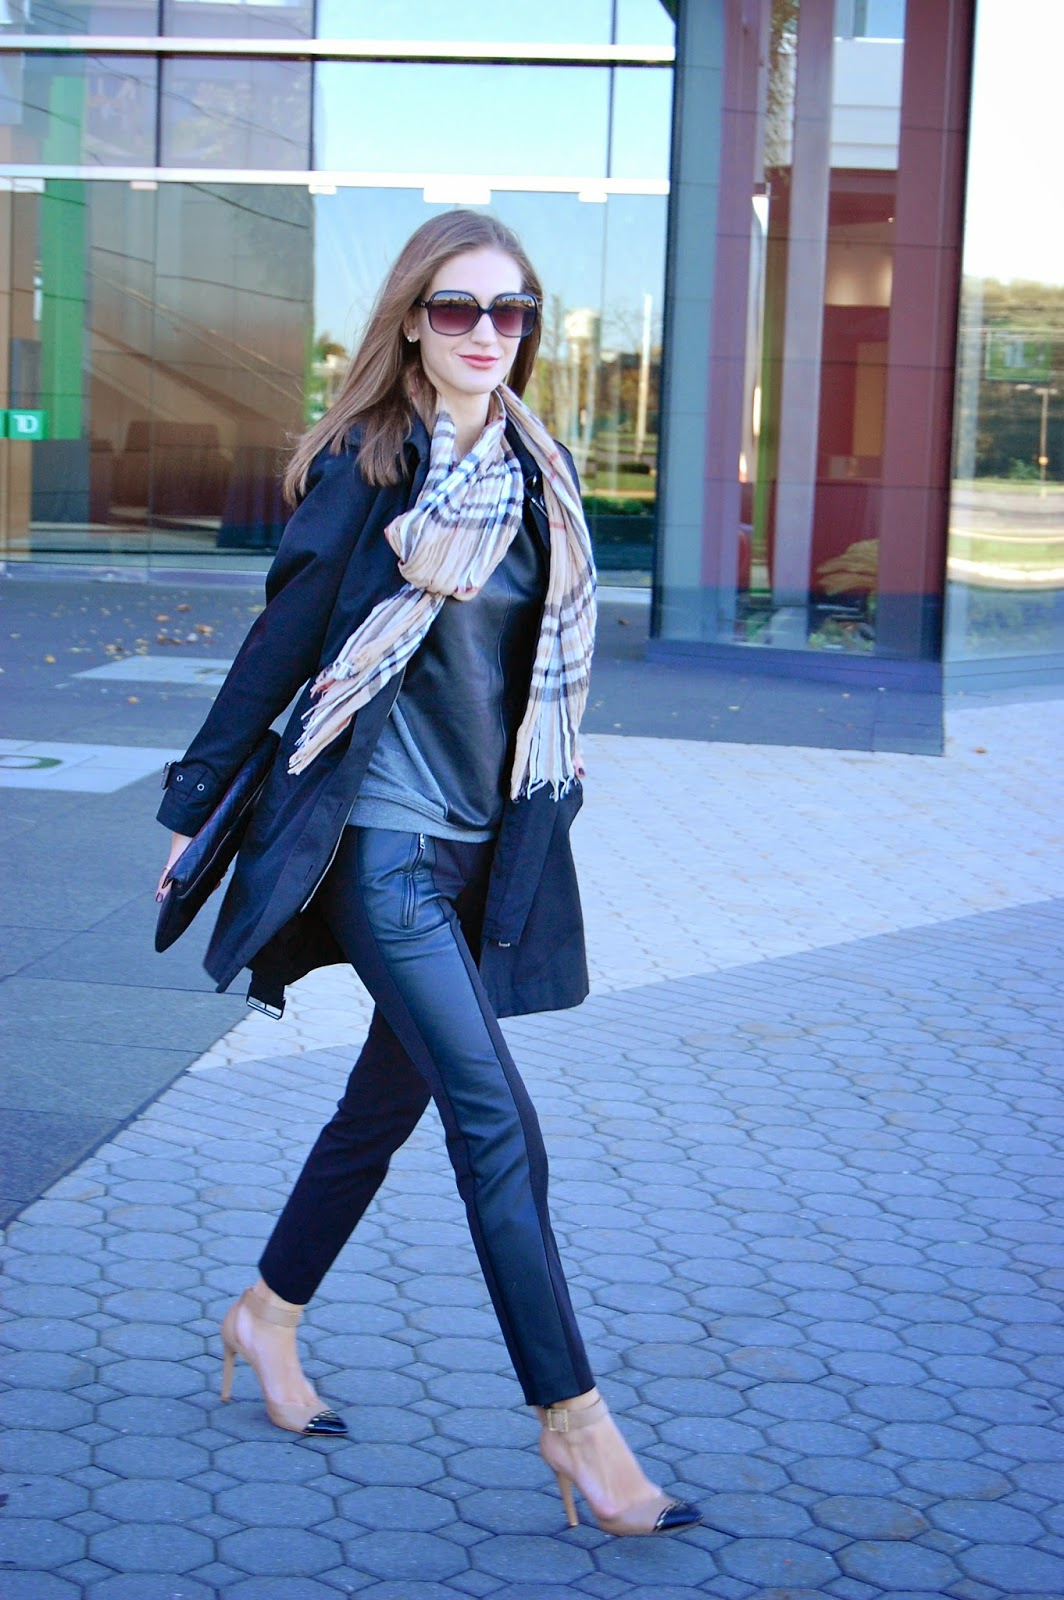 Wearing Burberry Trench Coat, Ann Taylor Faux Leather Dress Pants, Burberry Scarf